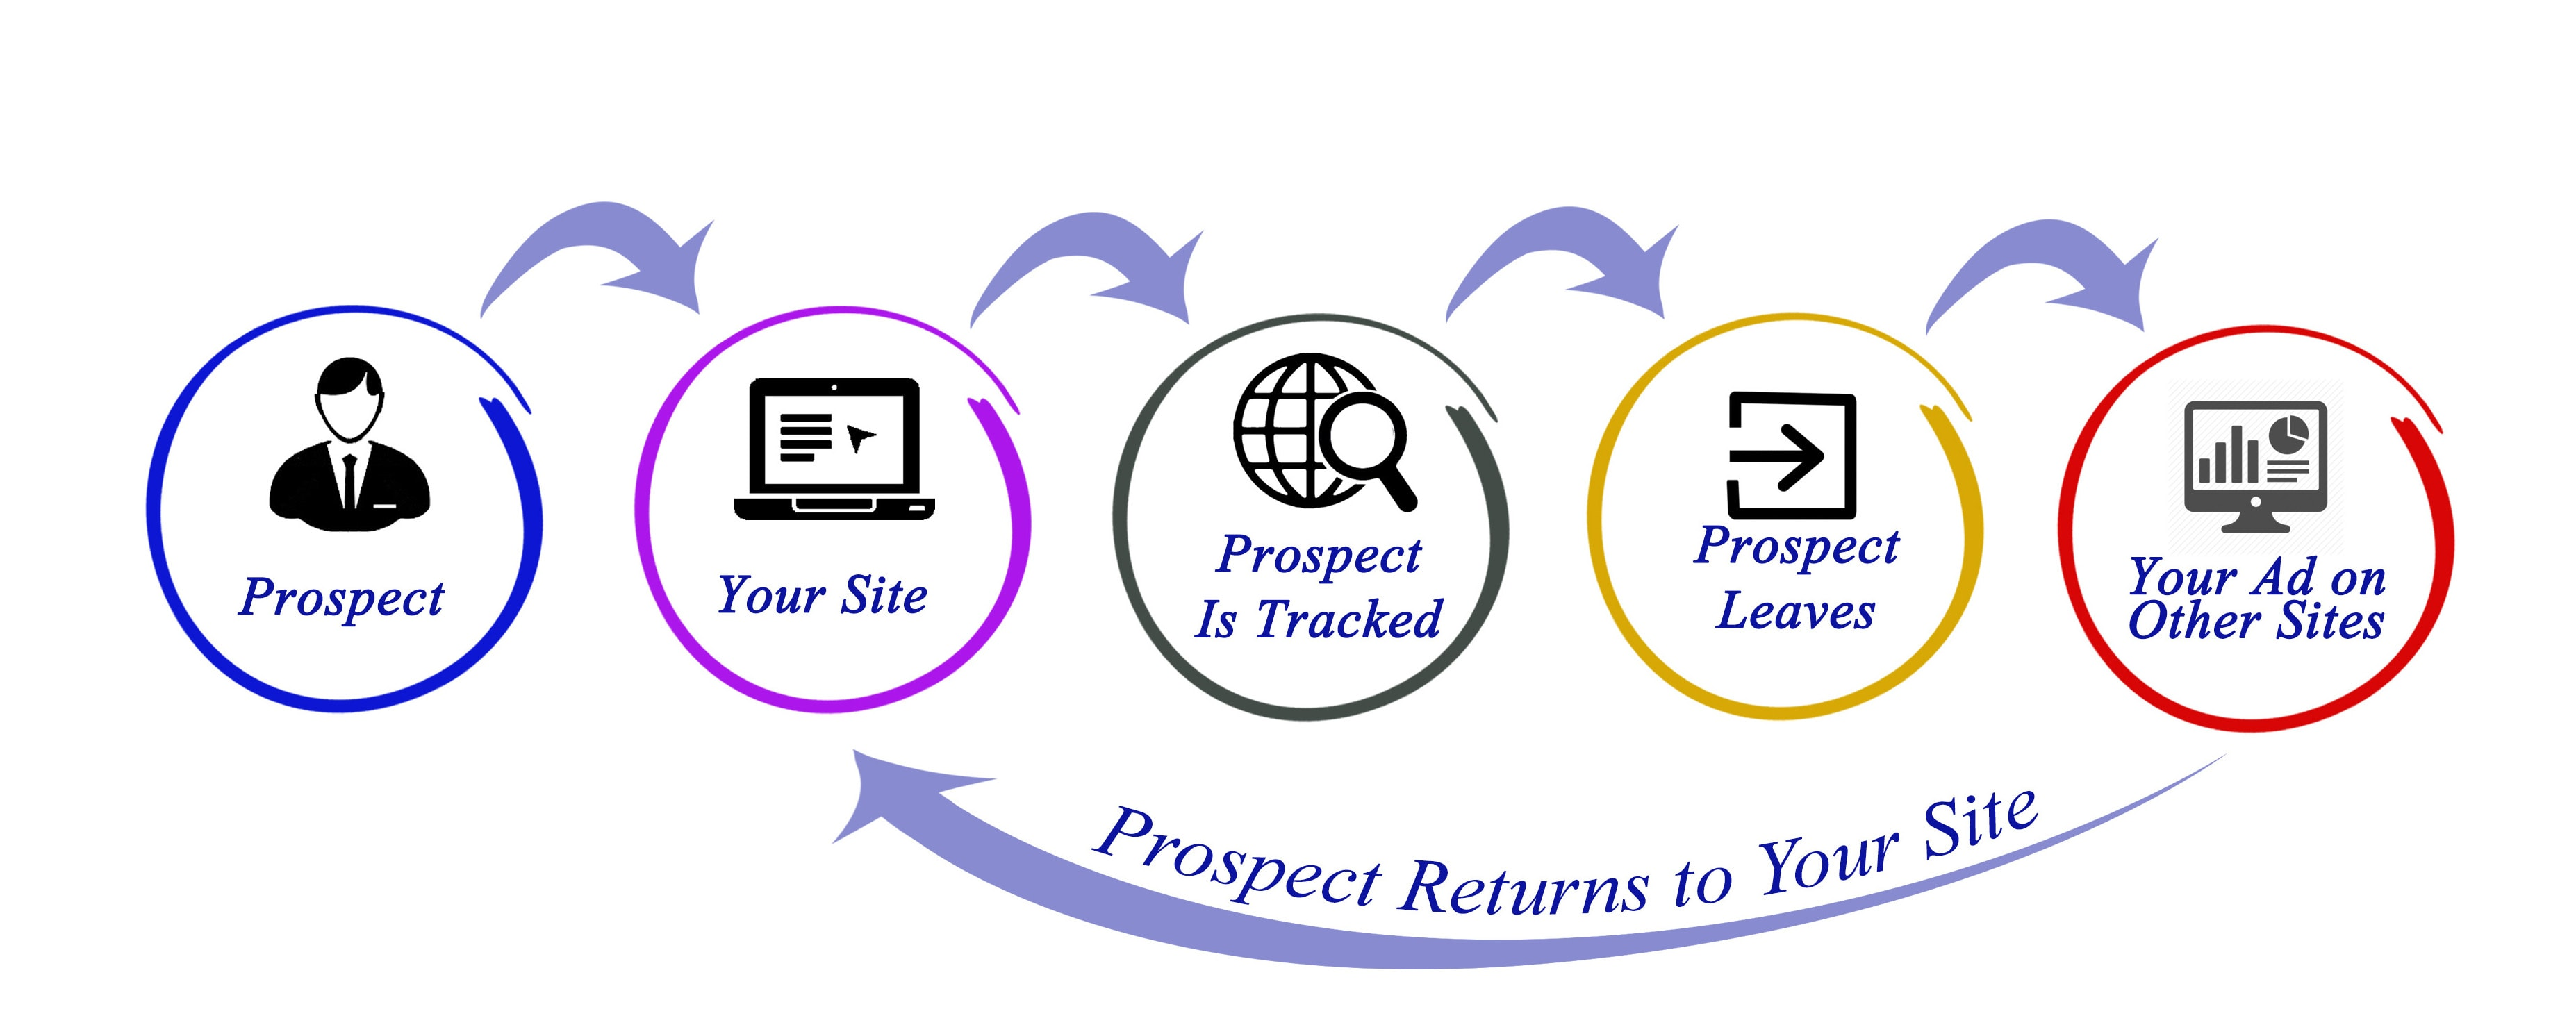 Remarketing Ad Process | LMS Solutions